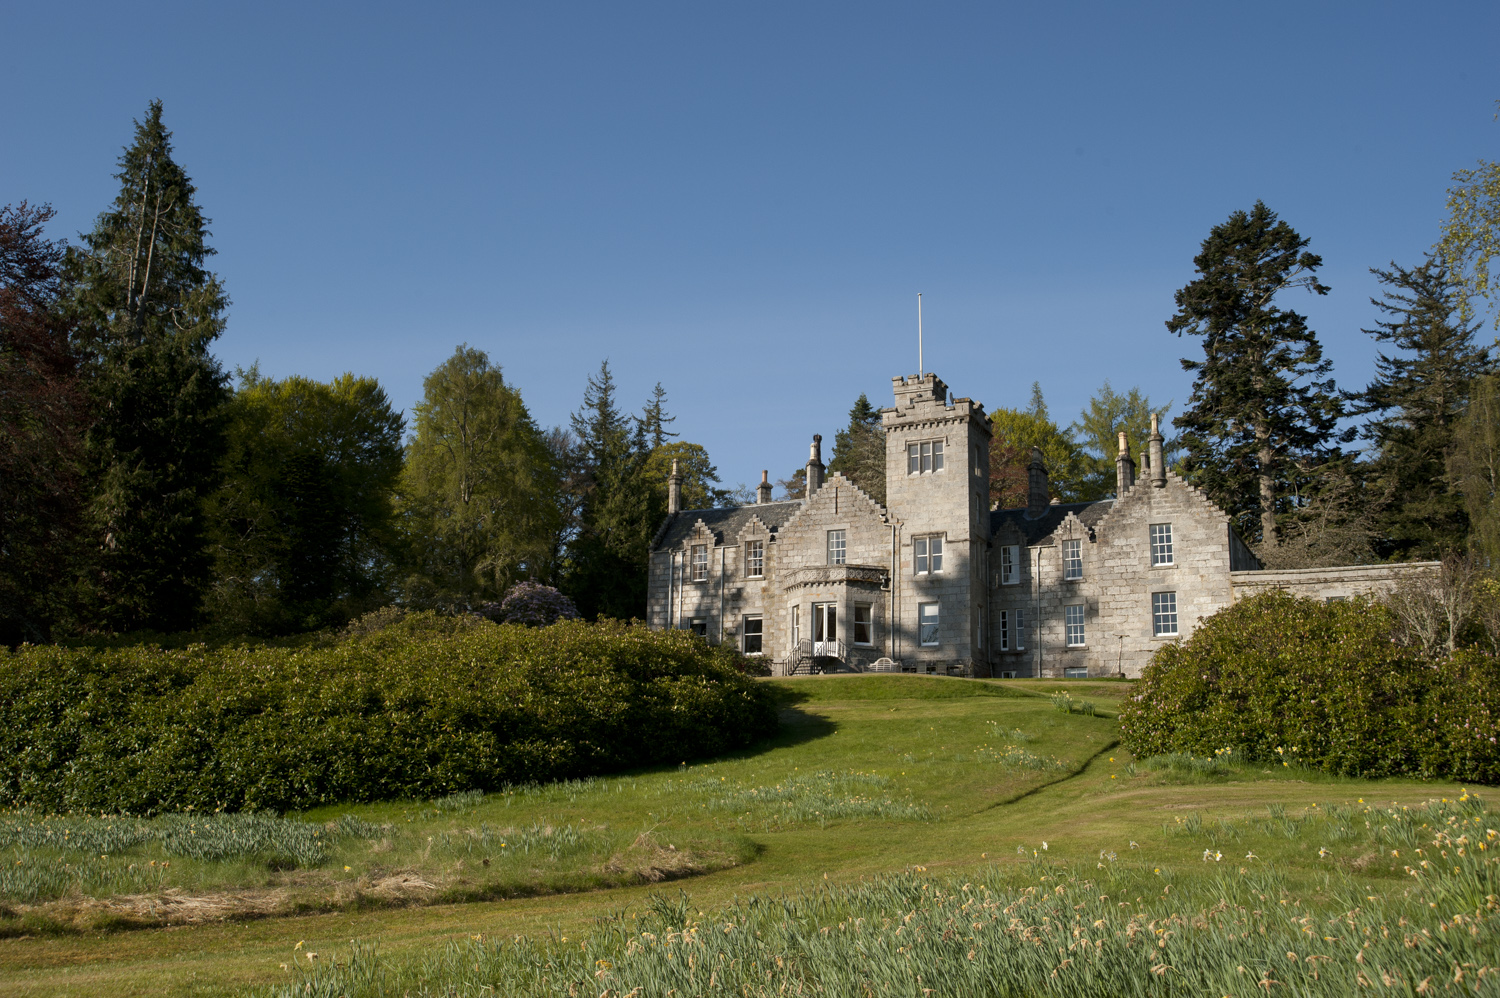 Built as a family home in the early 1840's by Major Euan Macpherson